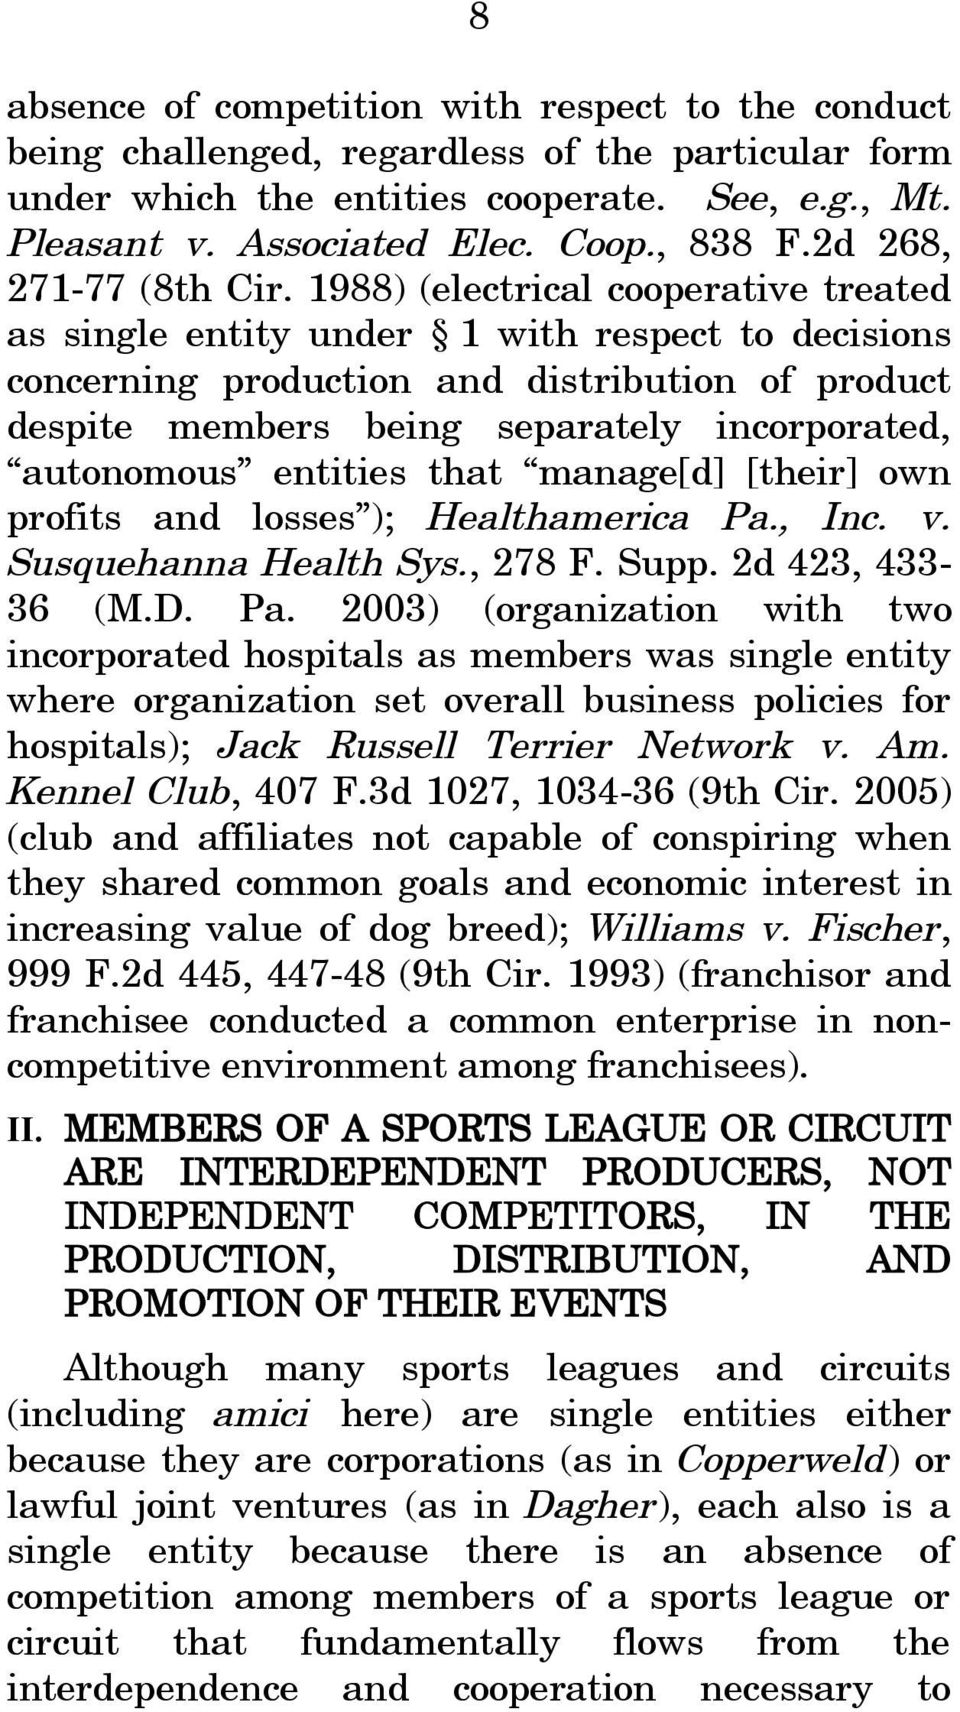 1988) (electrical cooperative treated as single entity under 1 with respect to decisions concerning production and distribution of product despite members being separately incorporated, autonomous